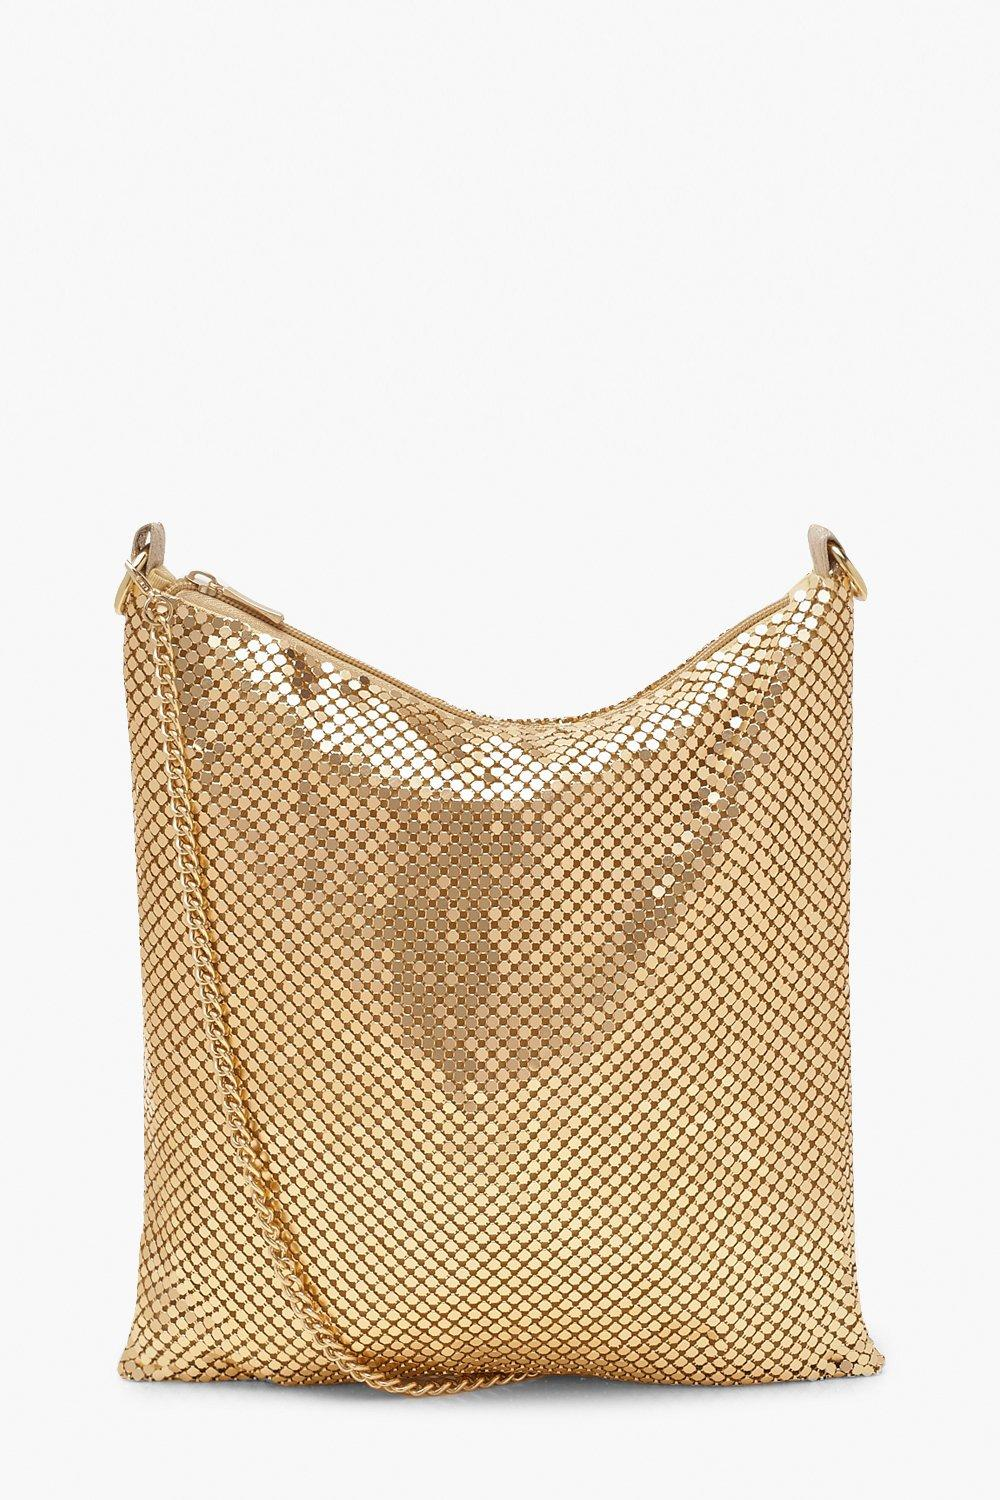 Vintage Handbags, Purses, Bags *New* Womens Chainmail Slouchy Cross Body Bag - metallics - One Size $46.00 AT vintagedancer.com